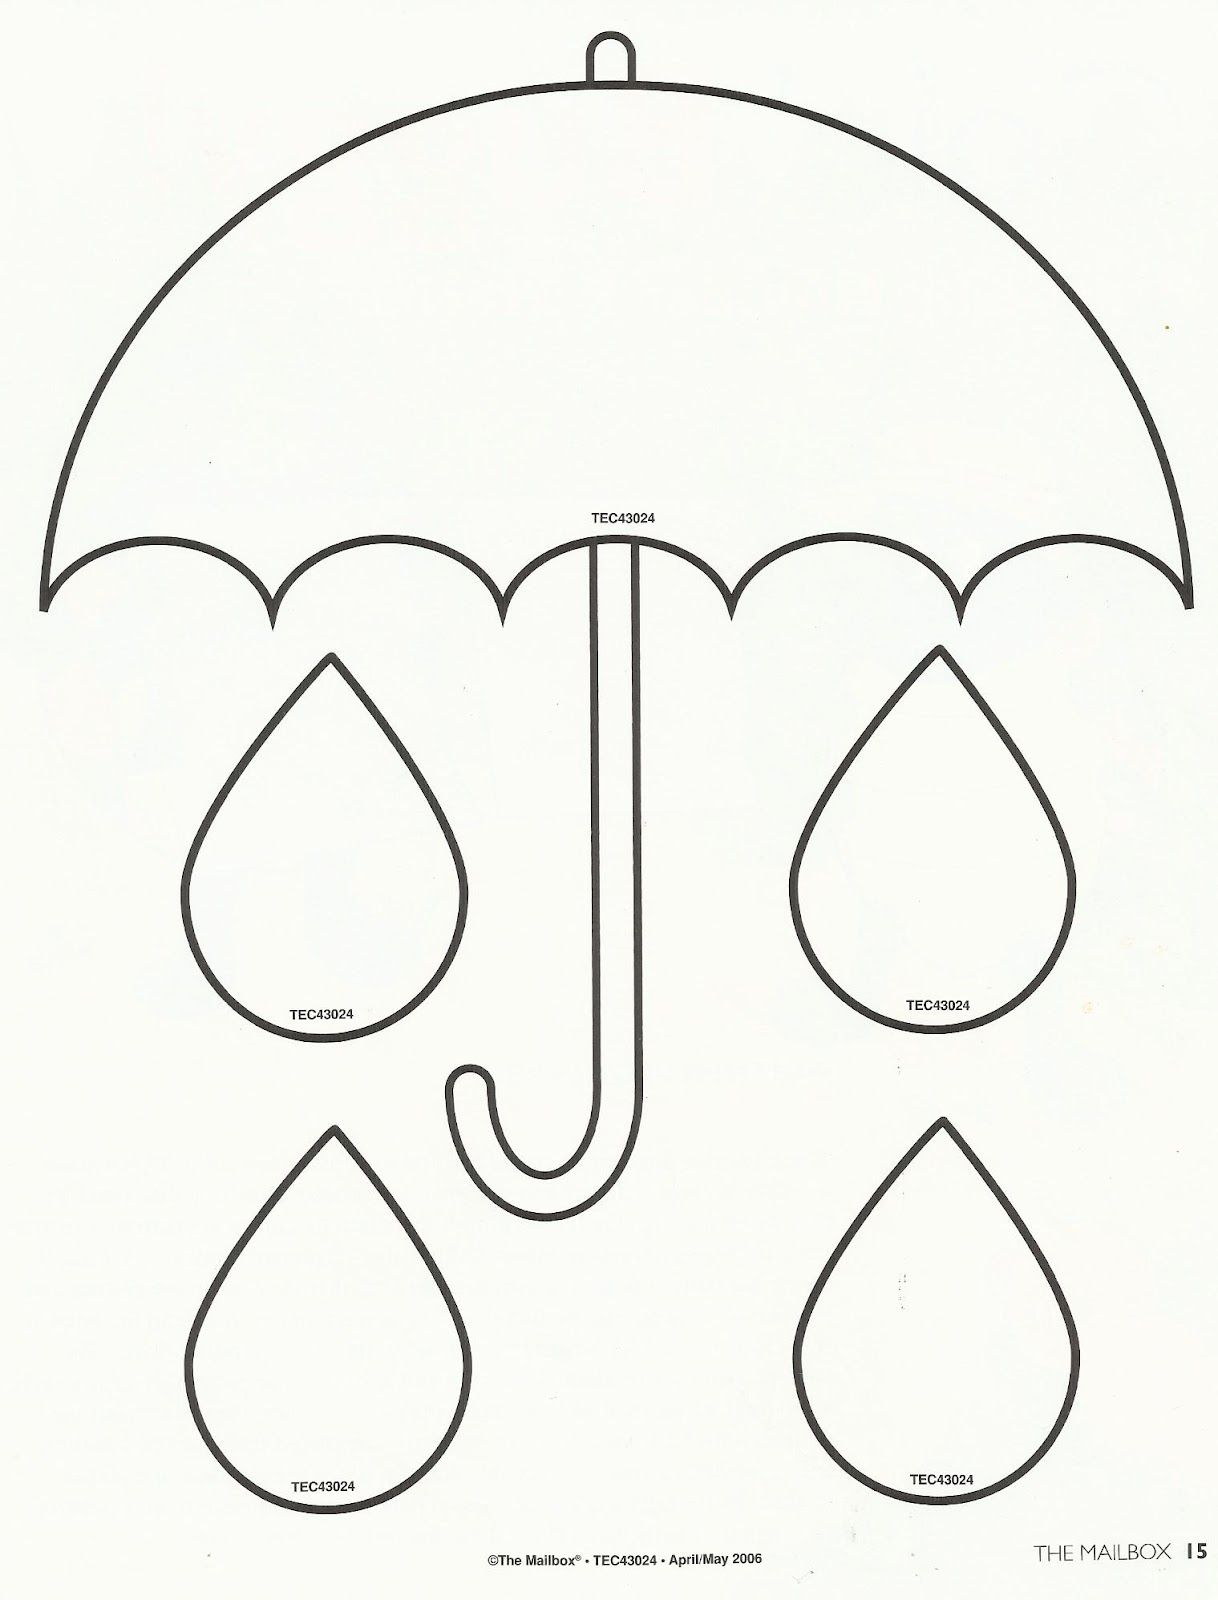 Spring rain coloring pages - A Simple Coloring Sheet For Younger Children That May Be In Your Session This May Even Work To Make A Hanging Mobile For Older Children By Printing It Out